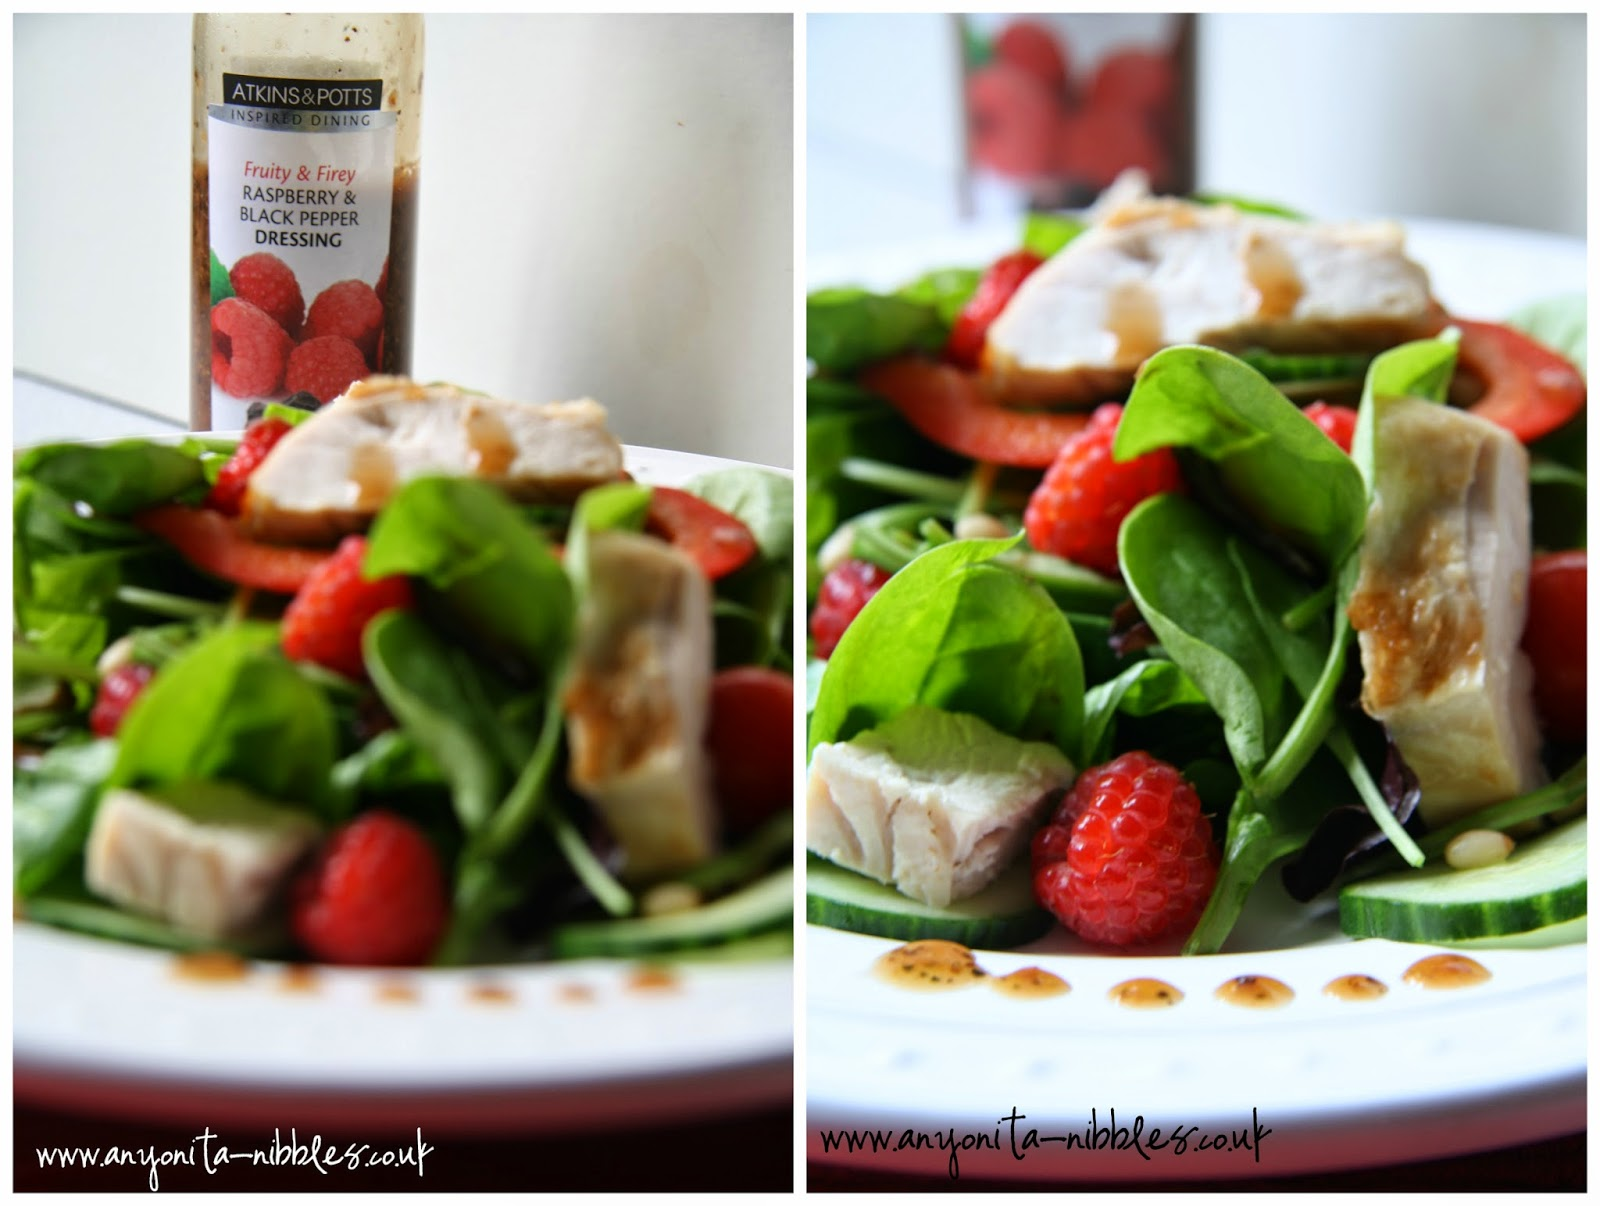 Atkins & Potts black pepper & raspberry dressing on salad from www.anyonita-nibbles.co.uk